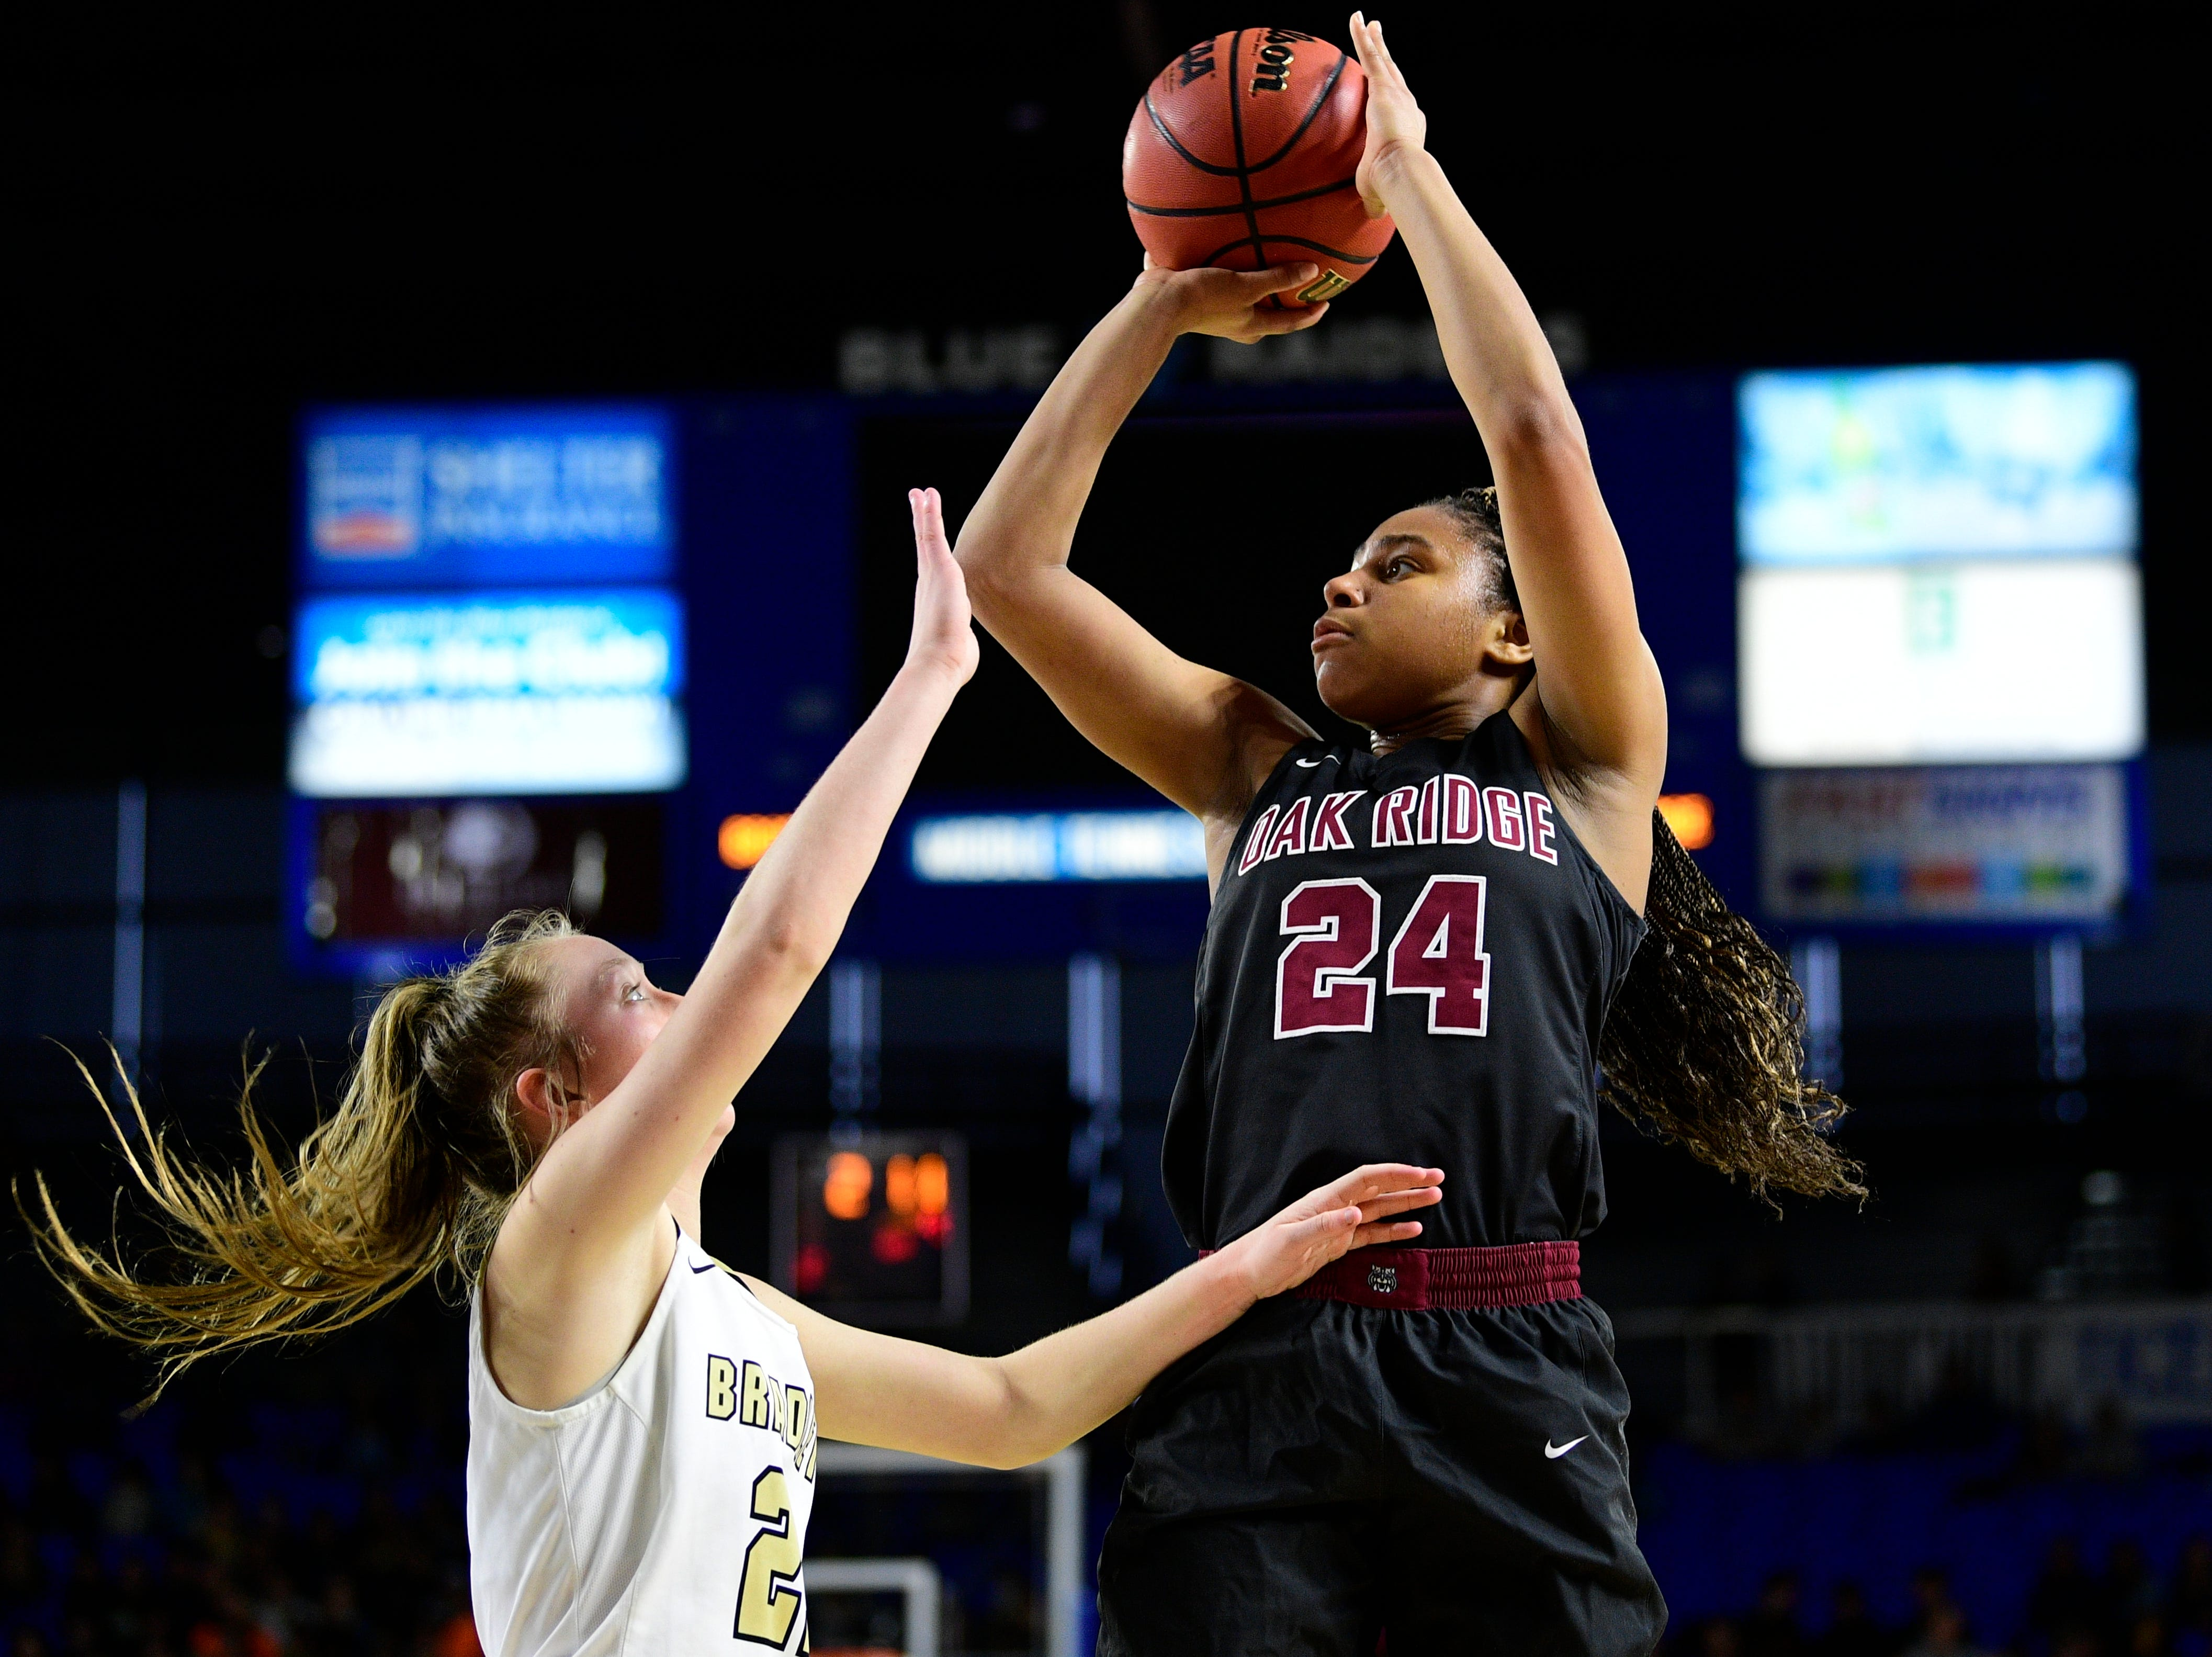 Oak Ridge's Jada Guinn (24) shoots the ball past Bradley Central's Jamie Williams (2) during a game between Oak Ridge and Bradley Central at the TSSAA girls state tournament at the Murphy Center in Murfreesboro, Tennessee on Friday, March 8, 2019.